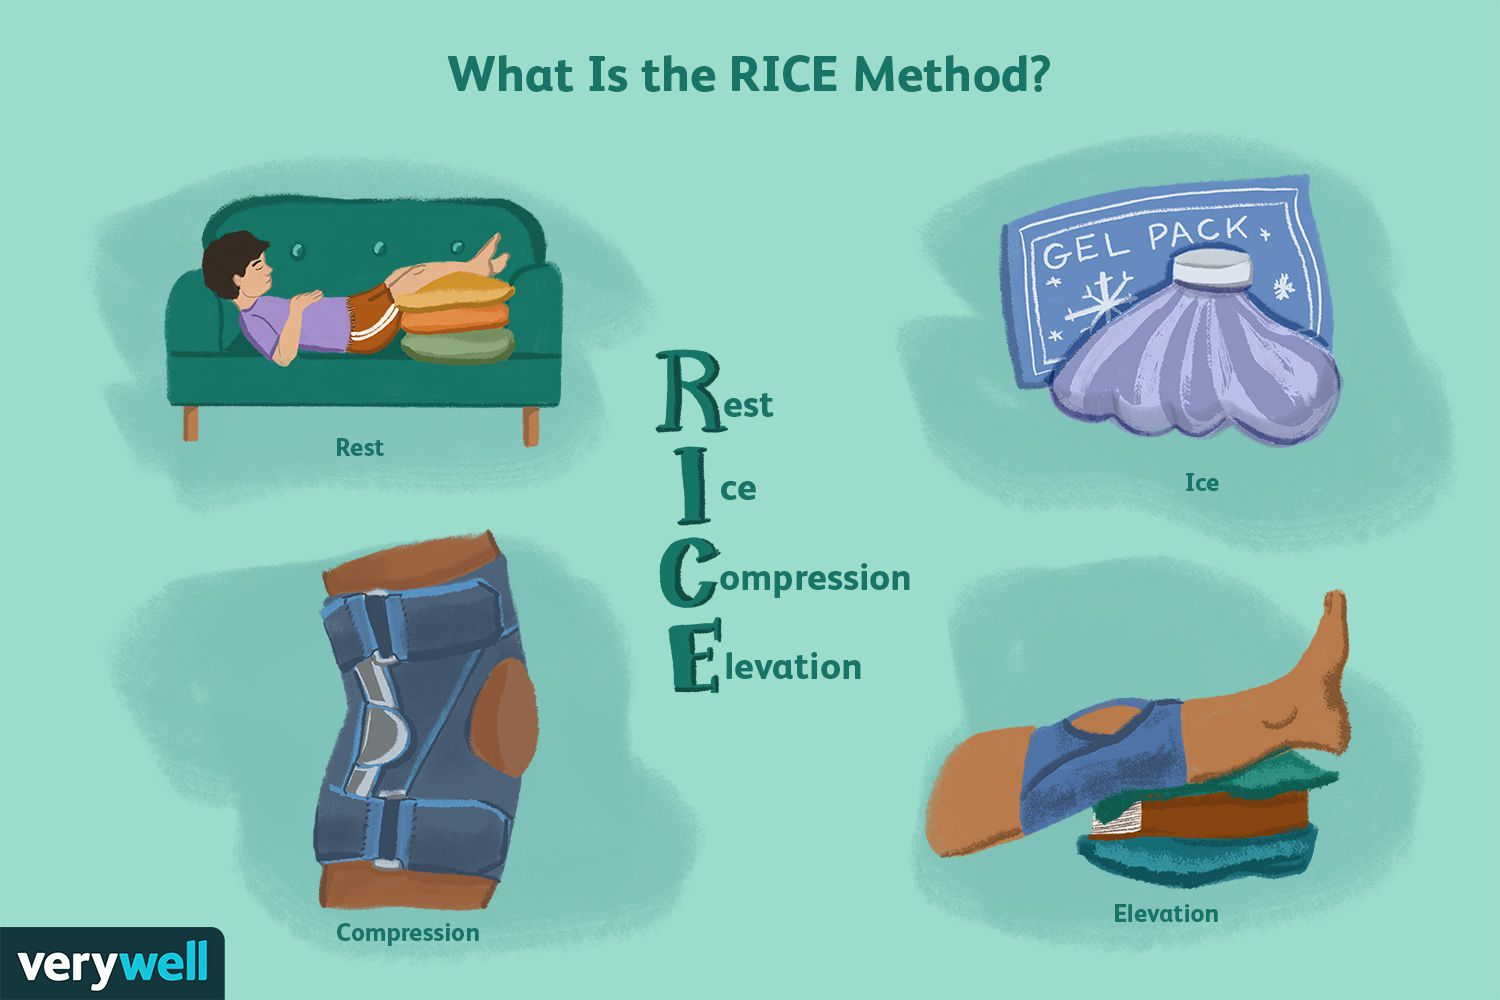 What Is the RICE Method?